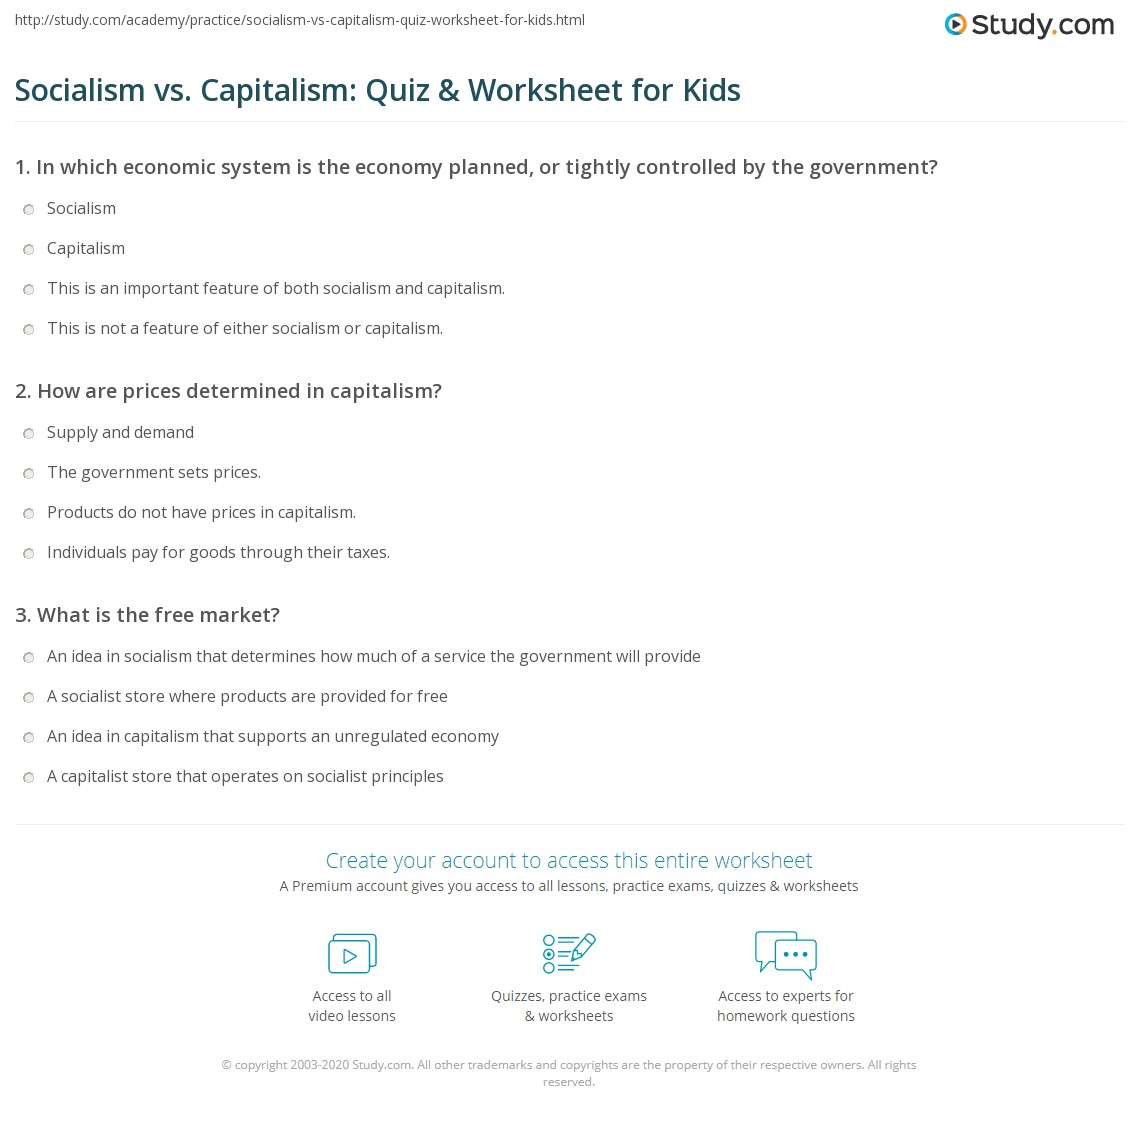 socialism vs capitalism quiz worksheet for kids. Black Bedroom Furniture Sets. Home Design Ideas